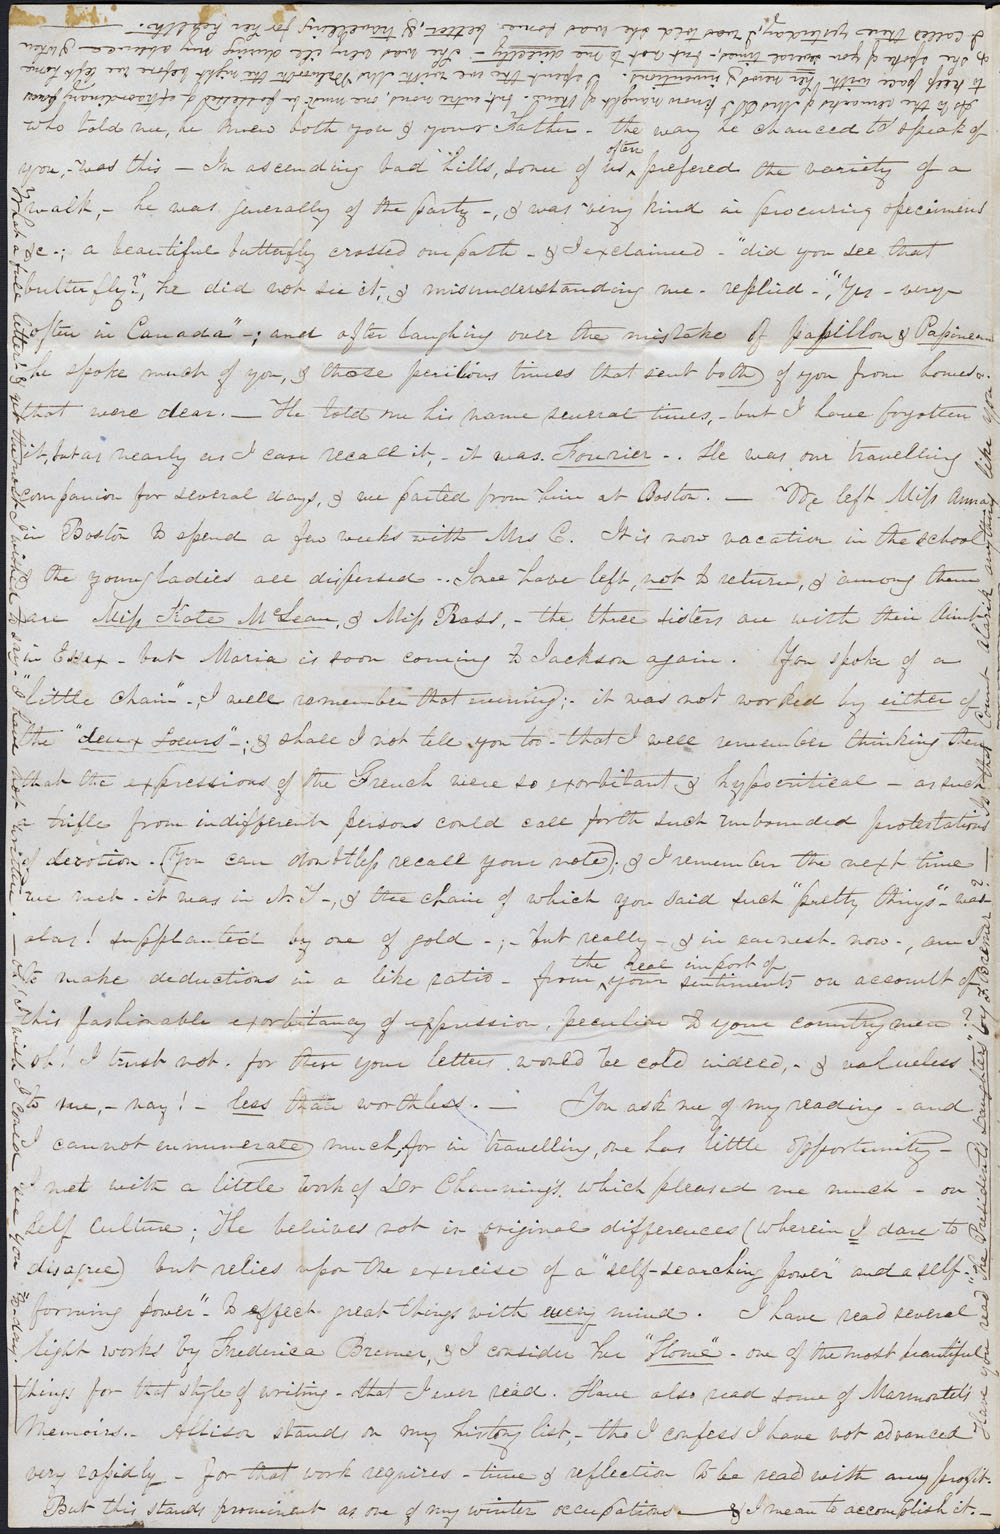 [Correspondance de Mary Westcott] 1843 . (item 13)